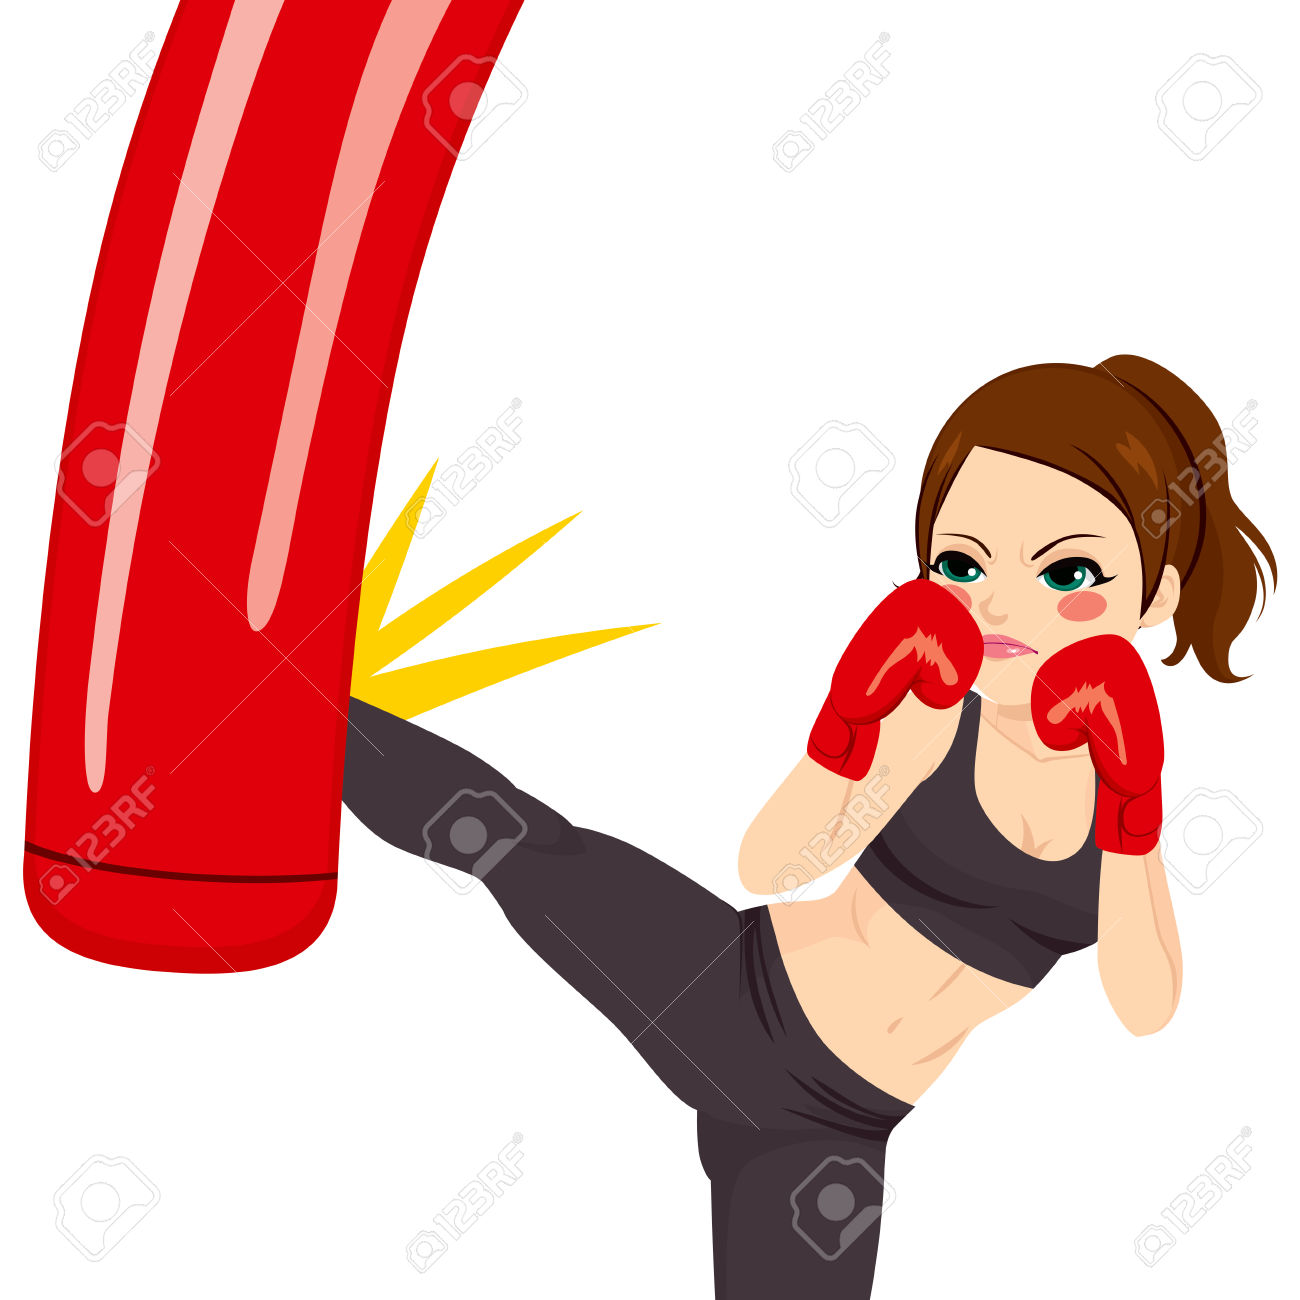 Boxer clipart boxing bag. Gloves art free download